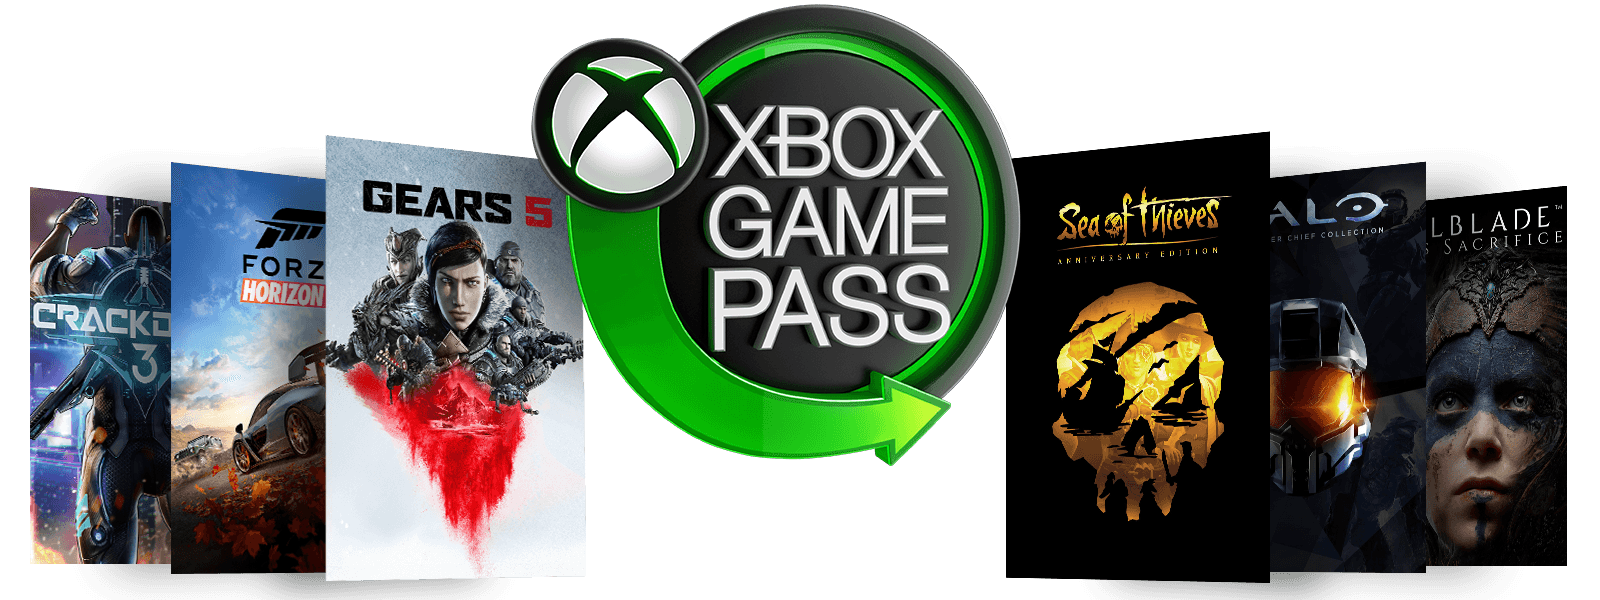 Логотип Neon Xbox Game Pass в окружении обложек игр Forza Horizon 4, Playerunknown Battleground, Crackdown 3, юбилейный выпуск sea of thieves, halo и Hellbade: senua's sacrifice